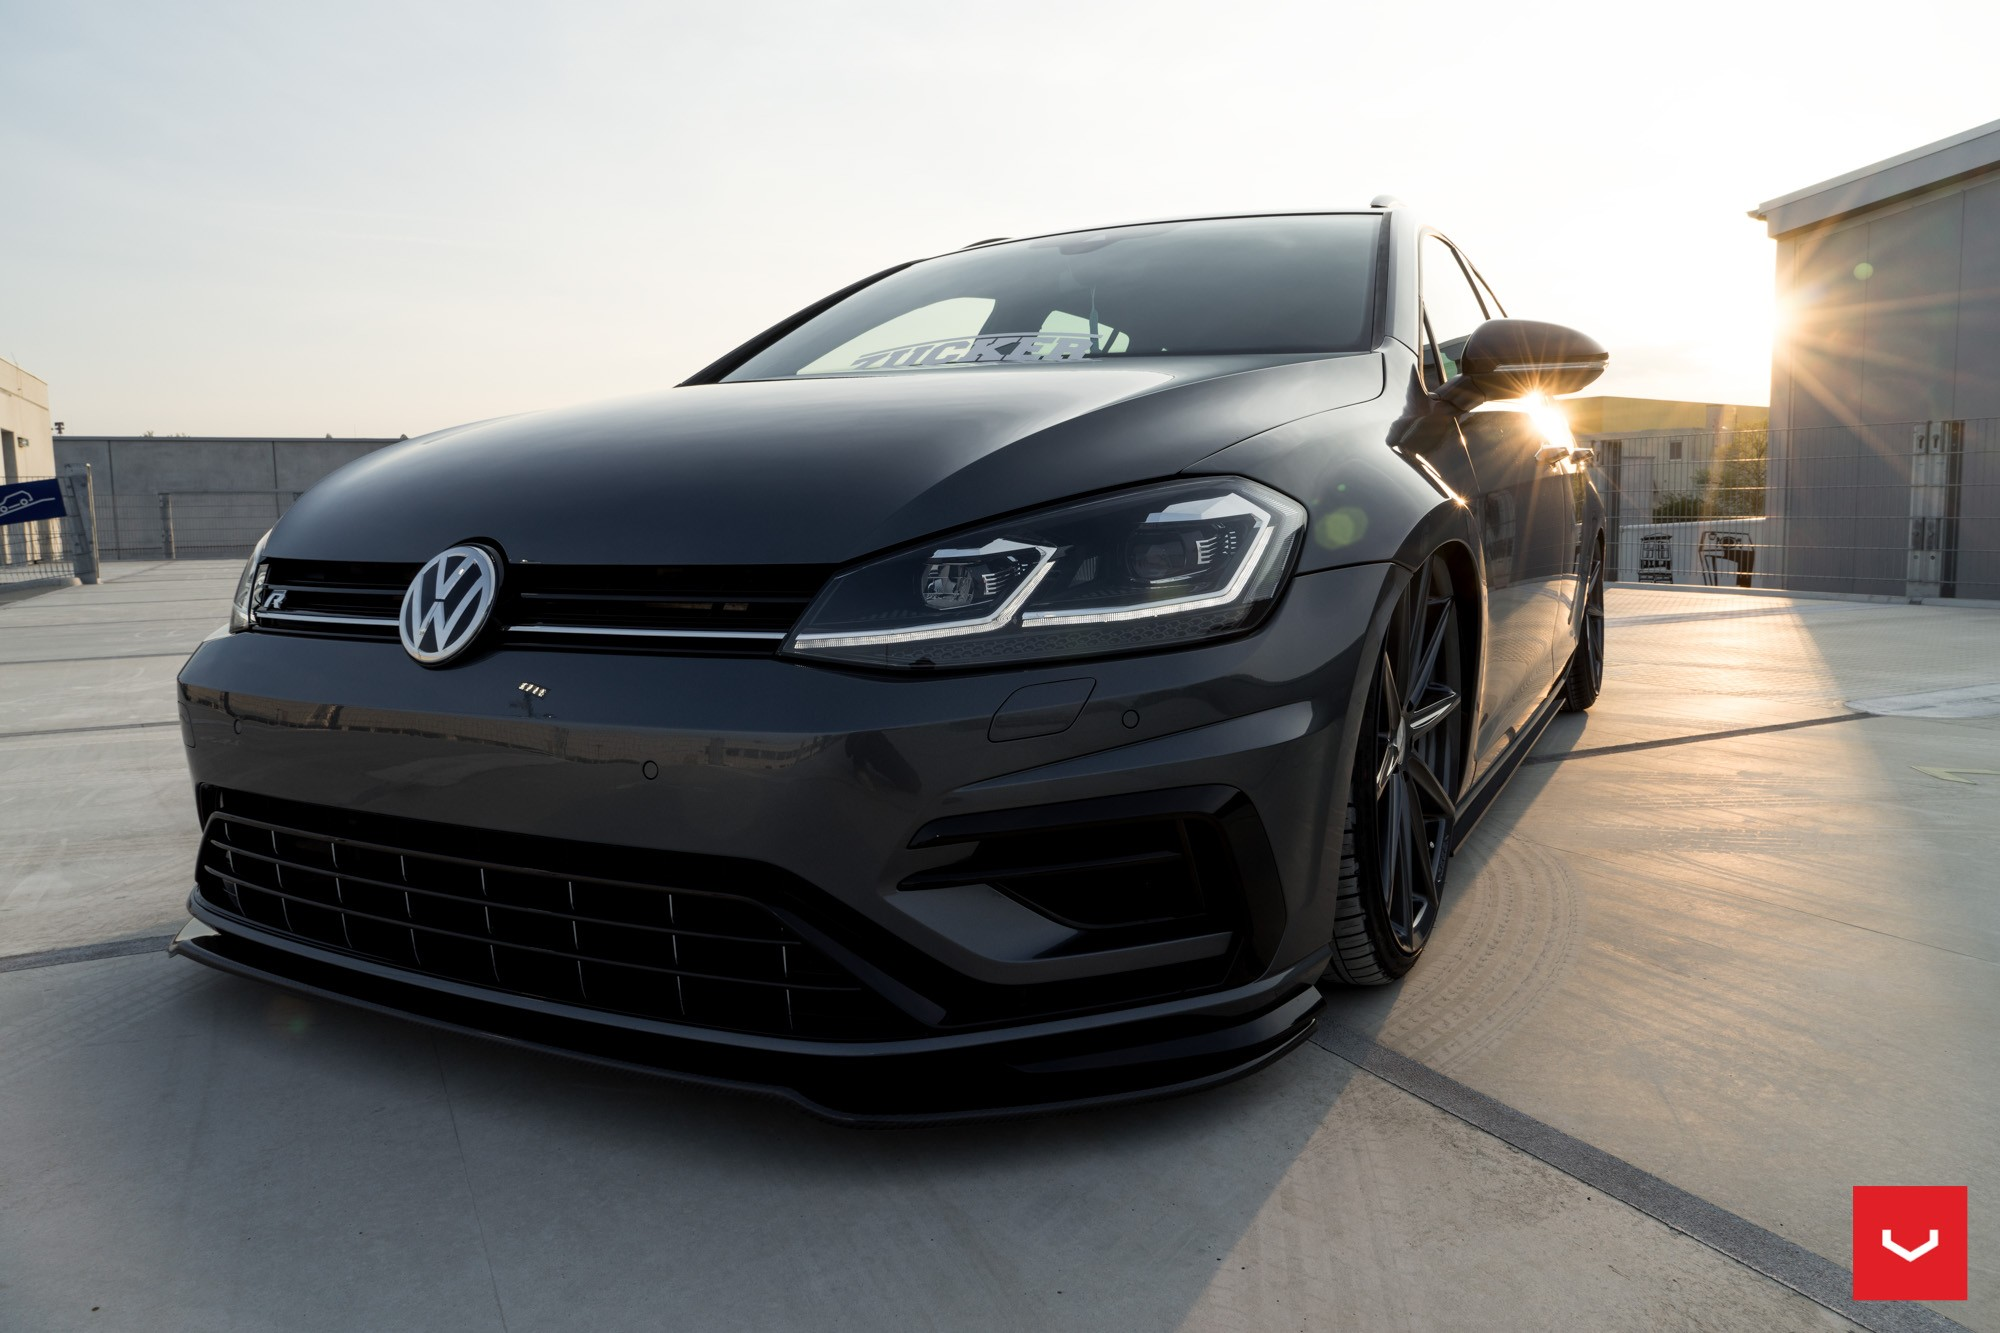 hight resolution of  2017 golf r variant gets stanced on vossen wheels for tuning debut